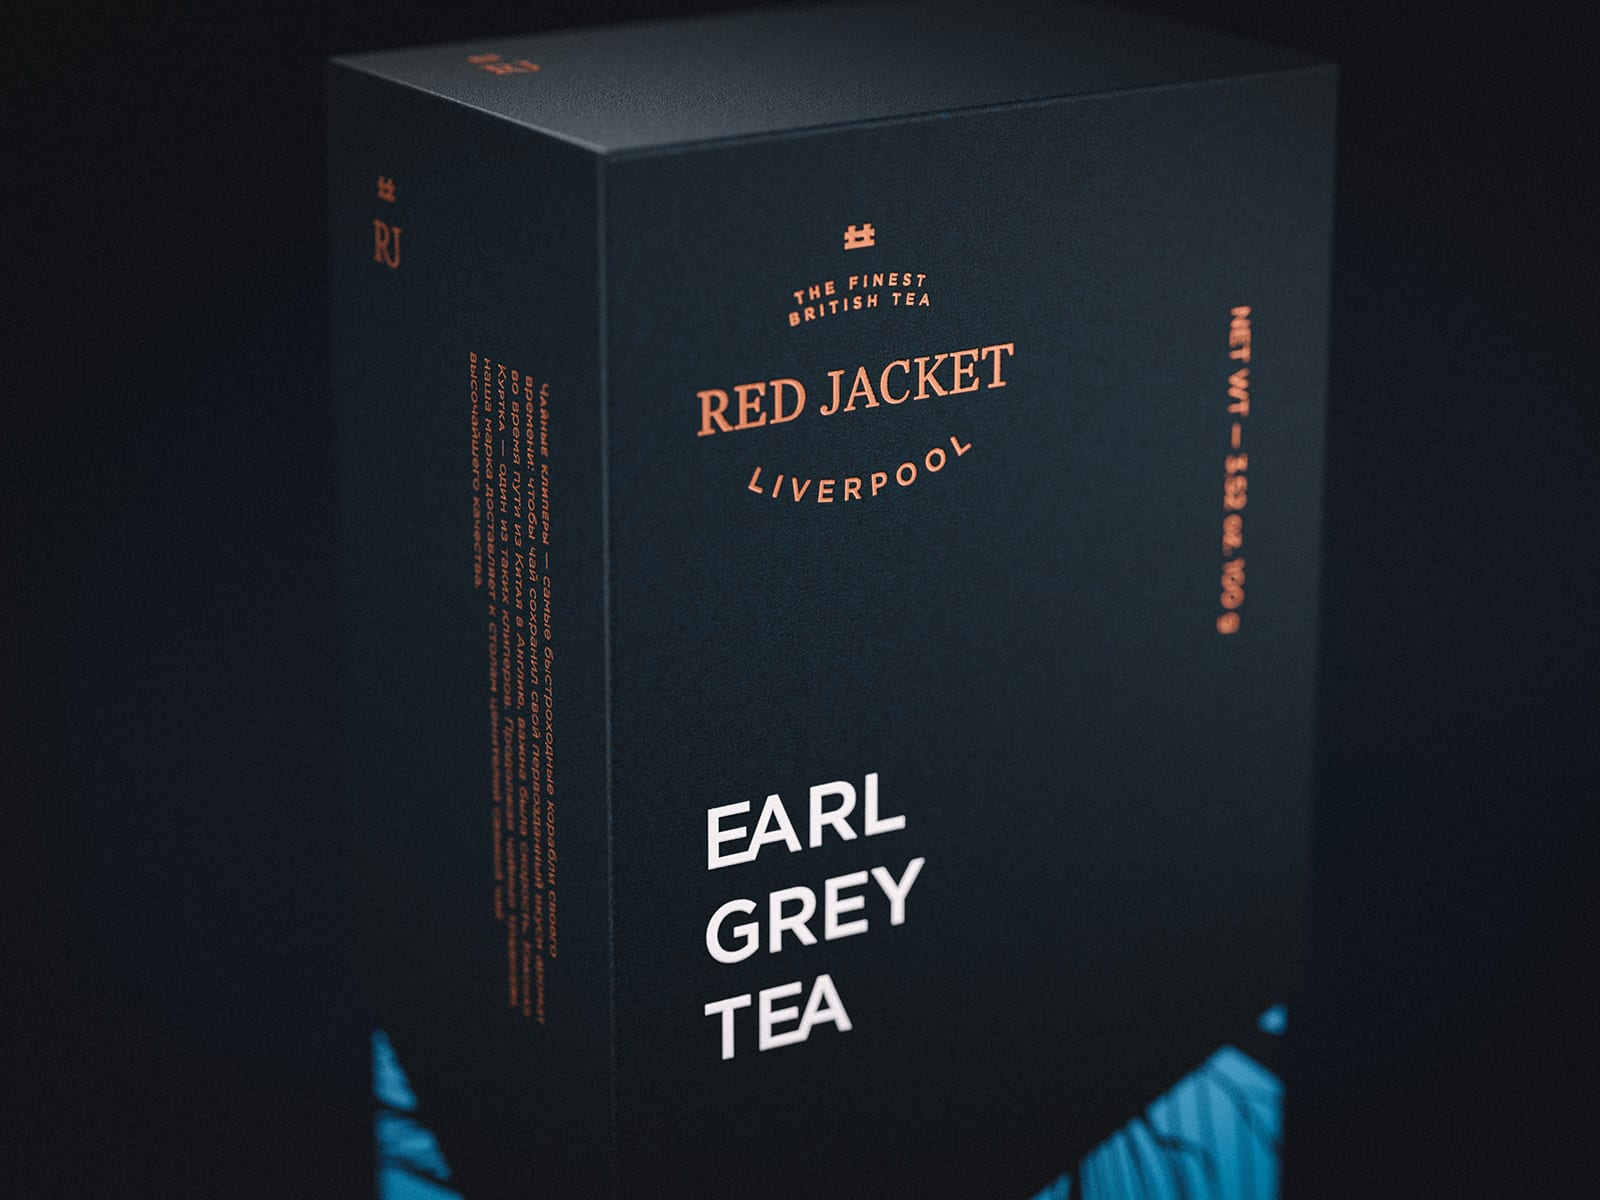 RedJacket Tea 13 1600x1200 - Ach, tie obaly – Red Jacket